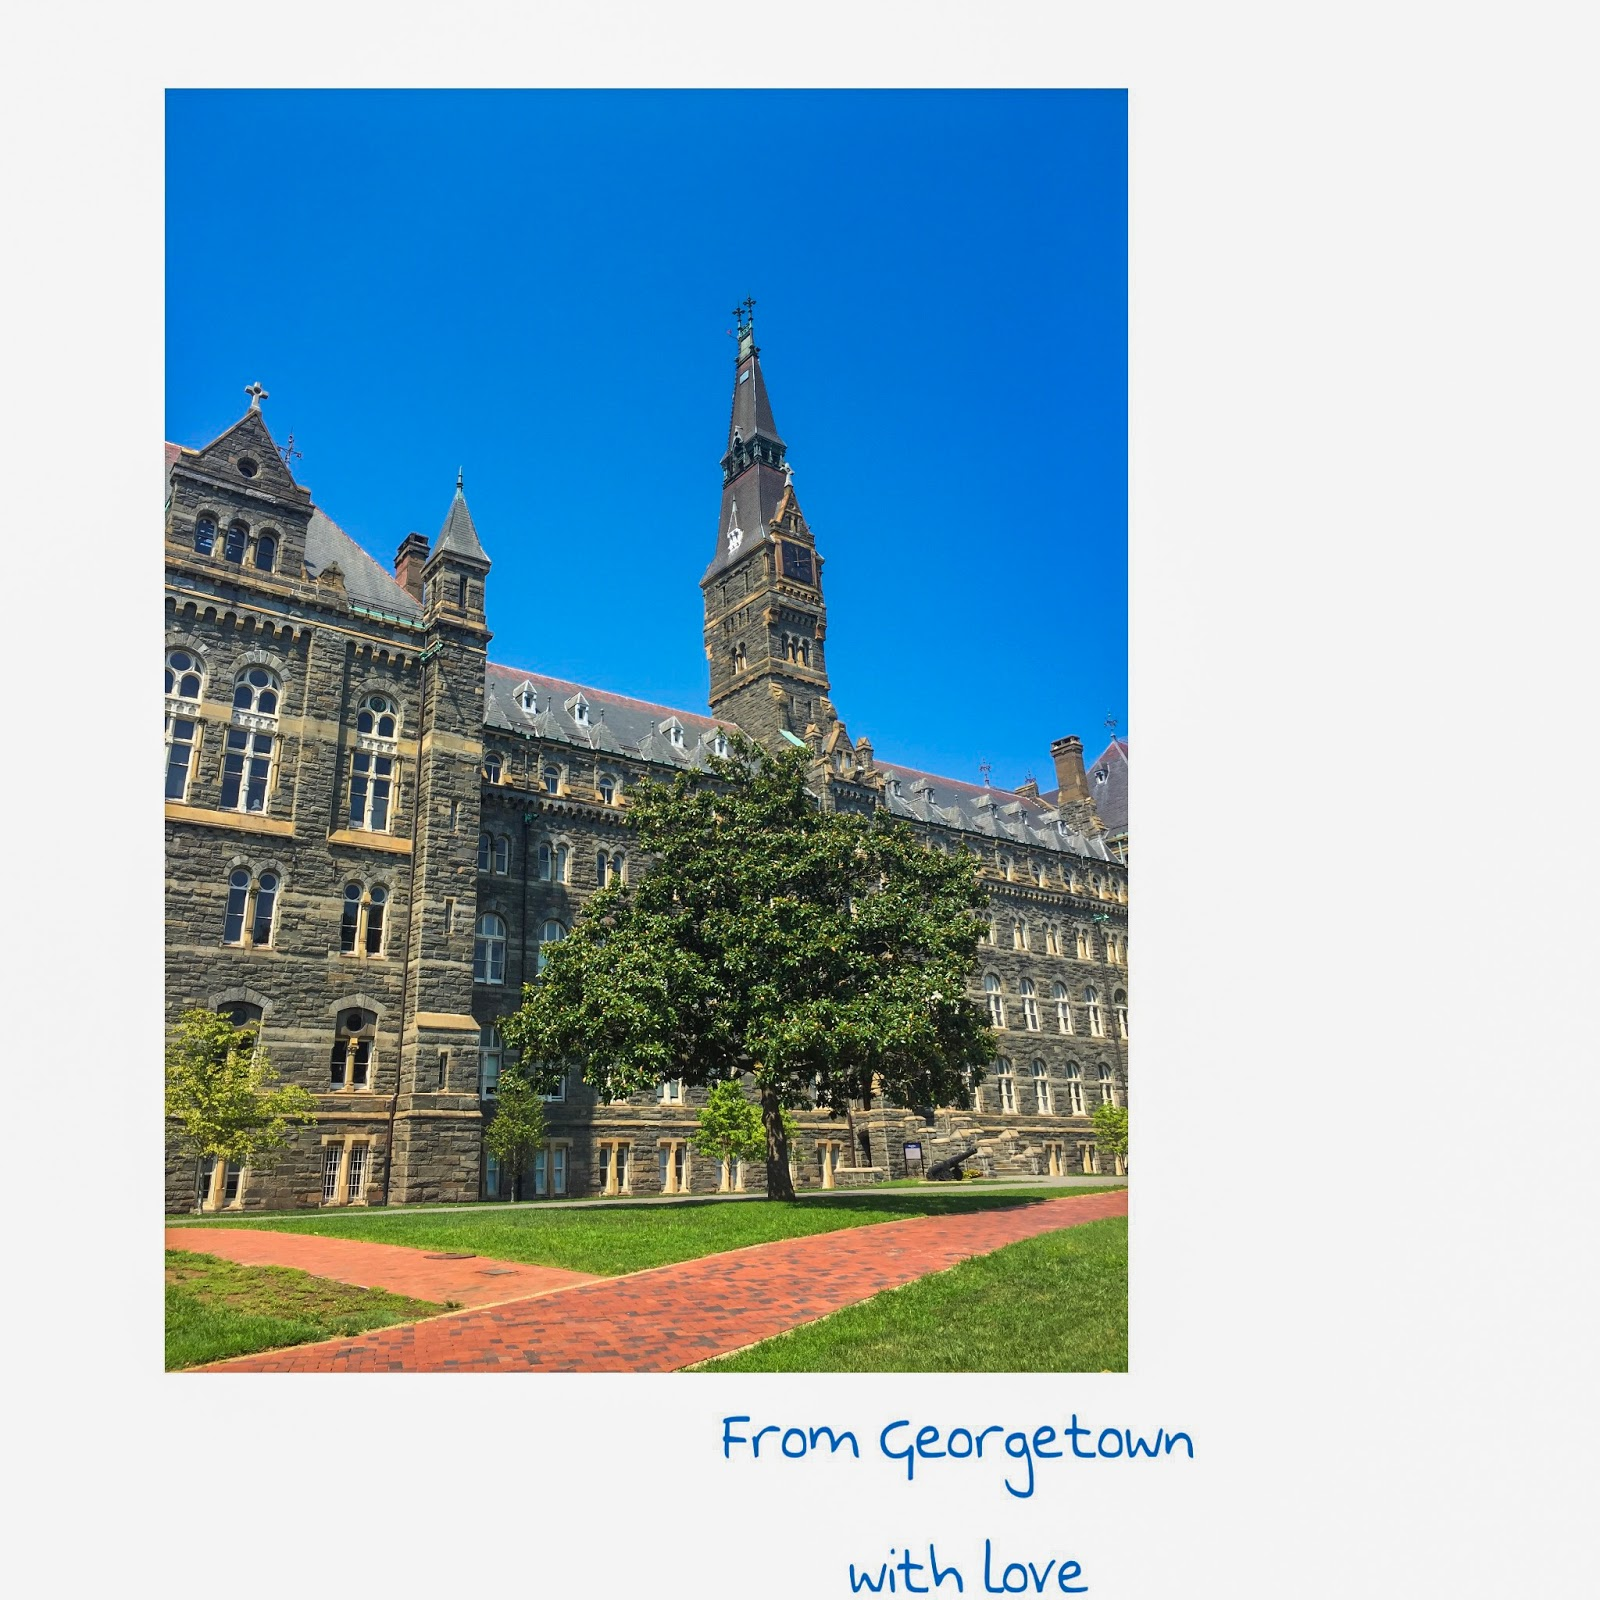 FIRST WEEK GEORGETOWN EXPERIENCE: THOSE WHO WANDER ARE LOST!